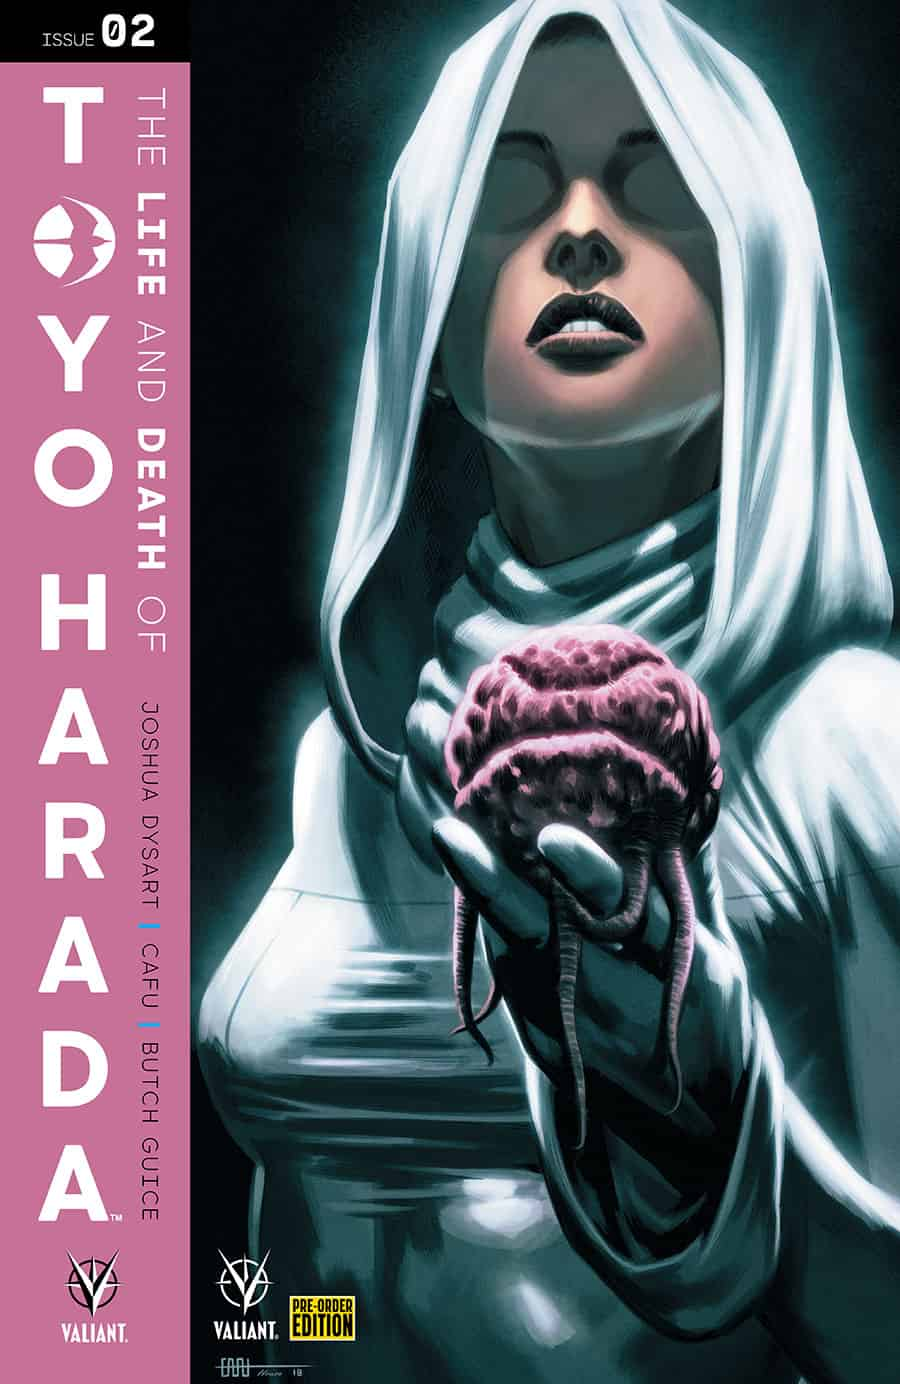 THE LIFE AND DEATH OF TOYO HARADA #2 - Pre-Order Edition Cover